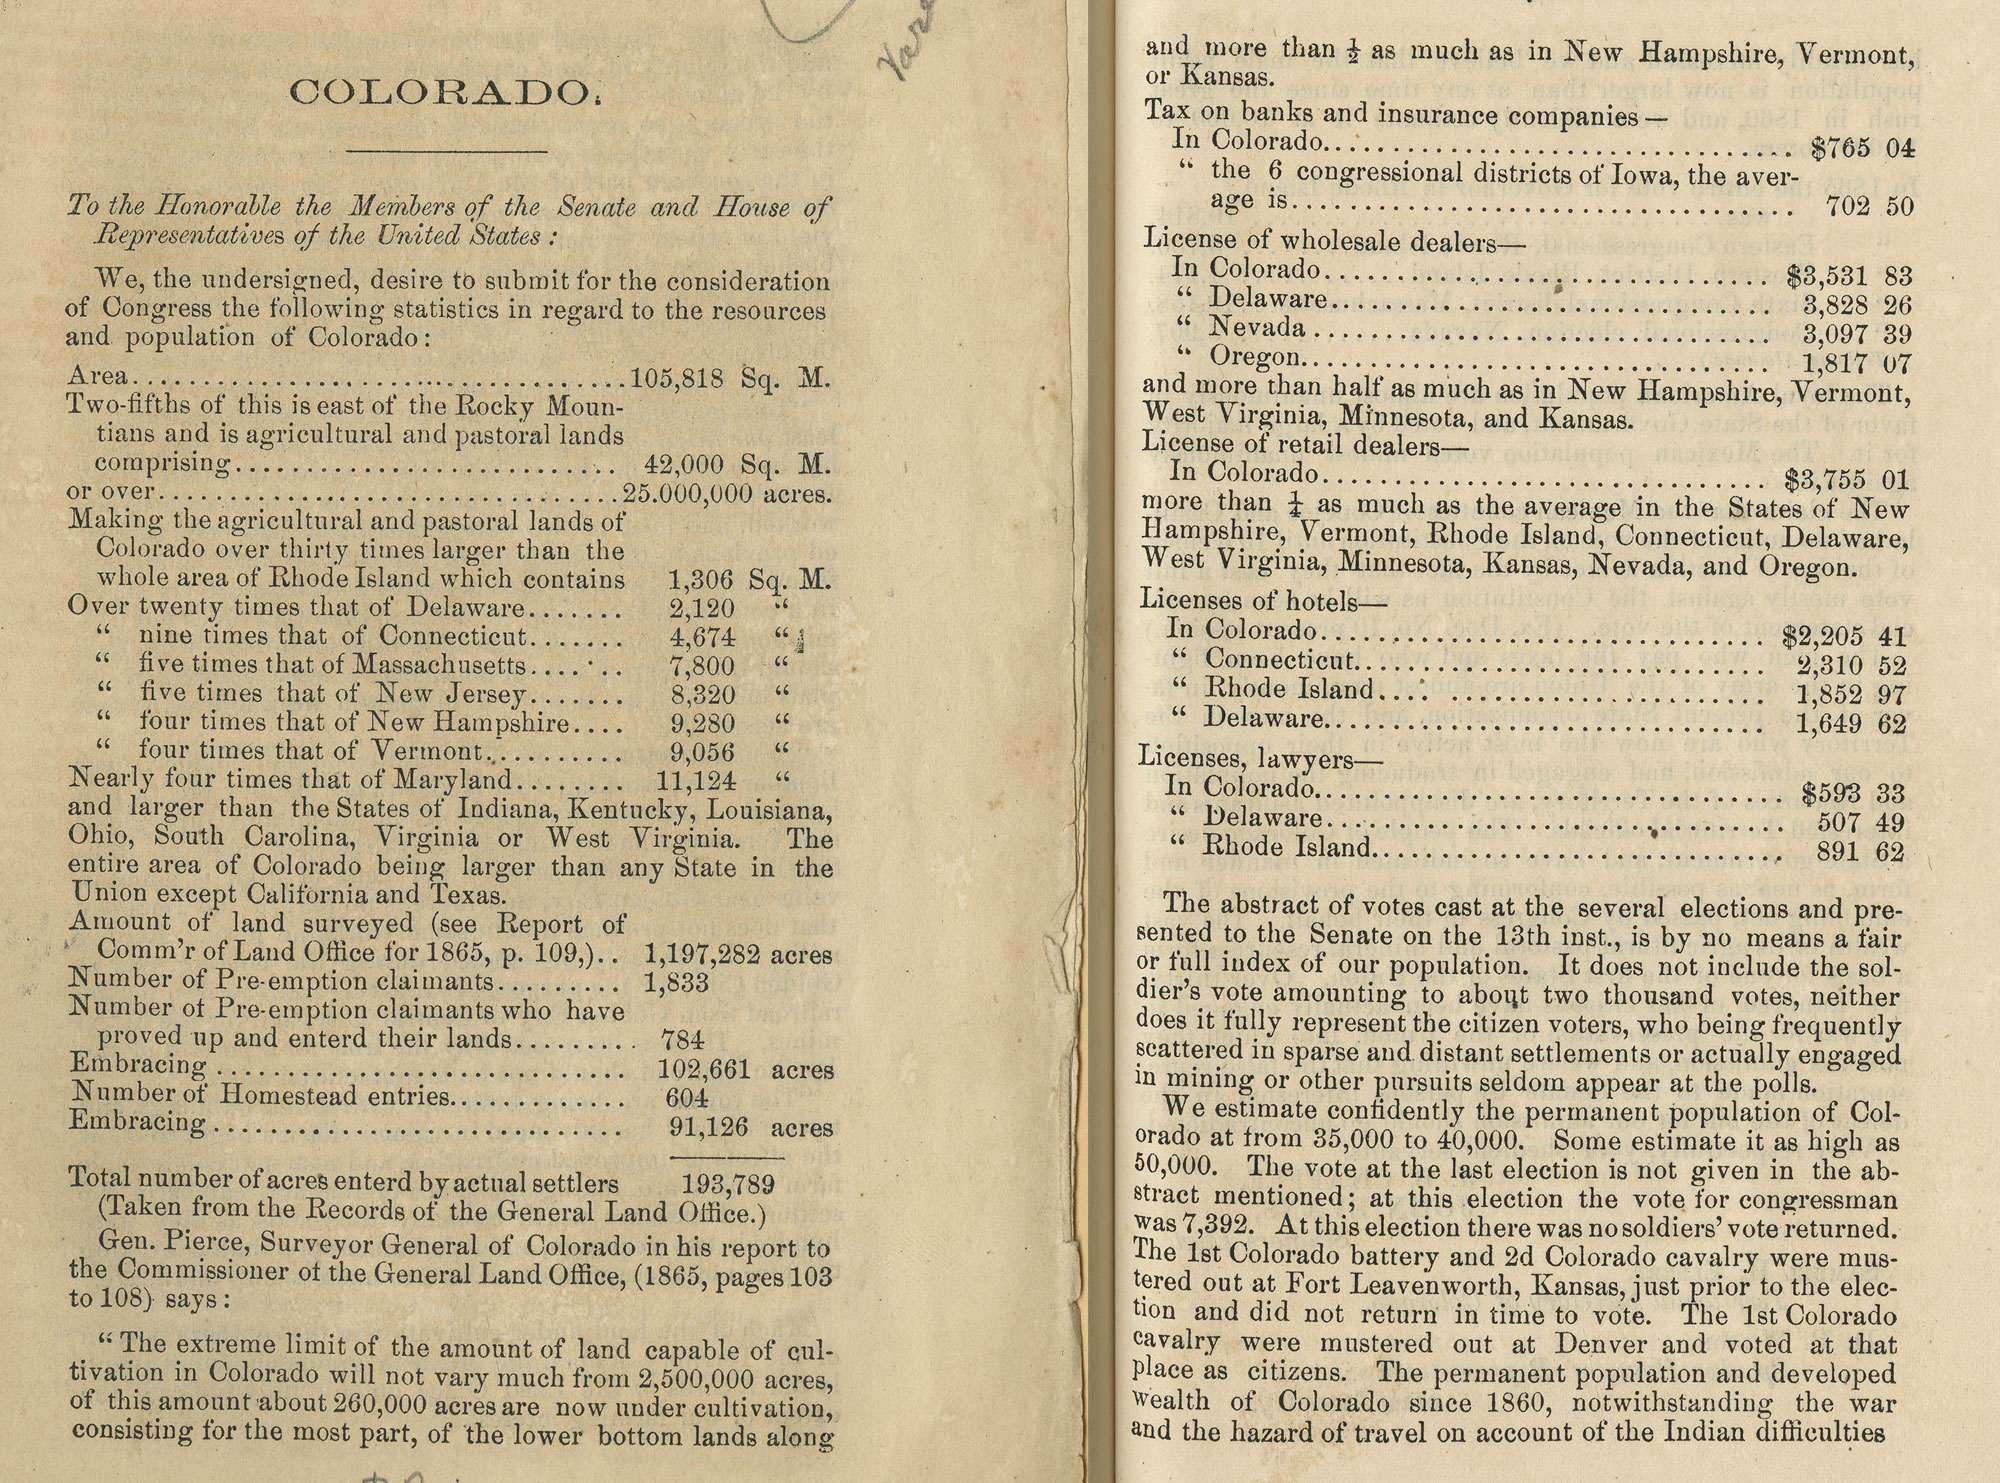 Copies of pages of Colorado statistics 1865